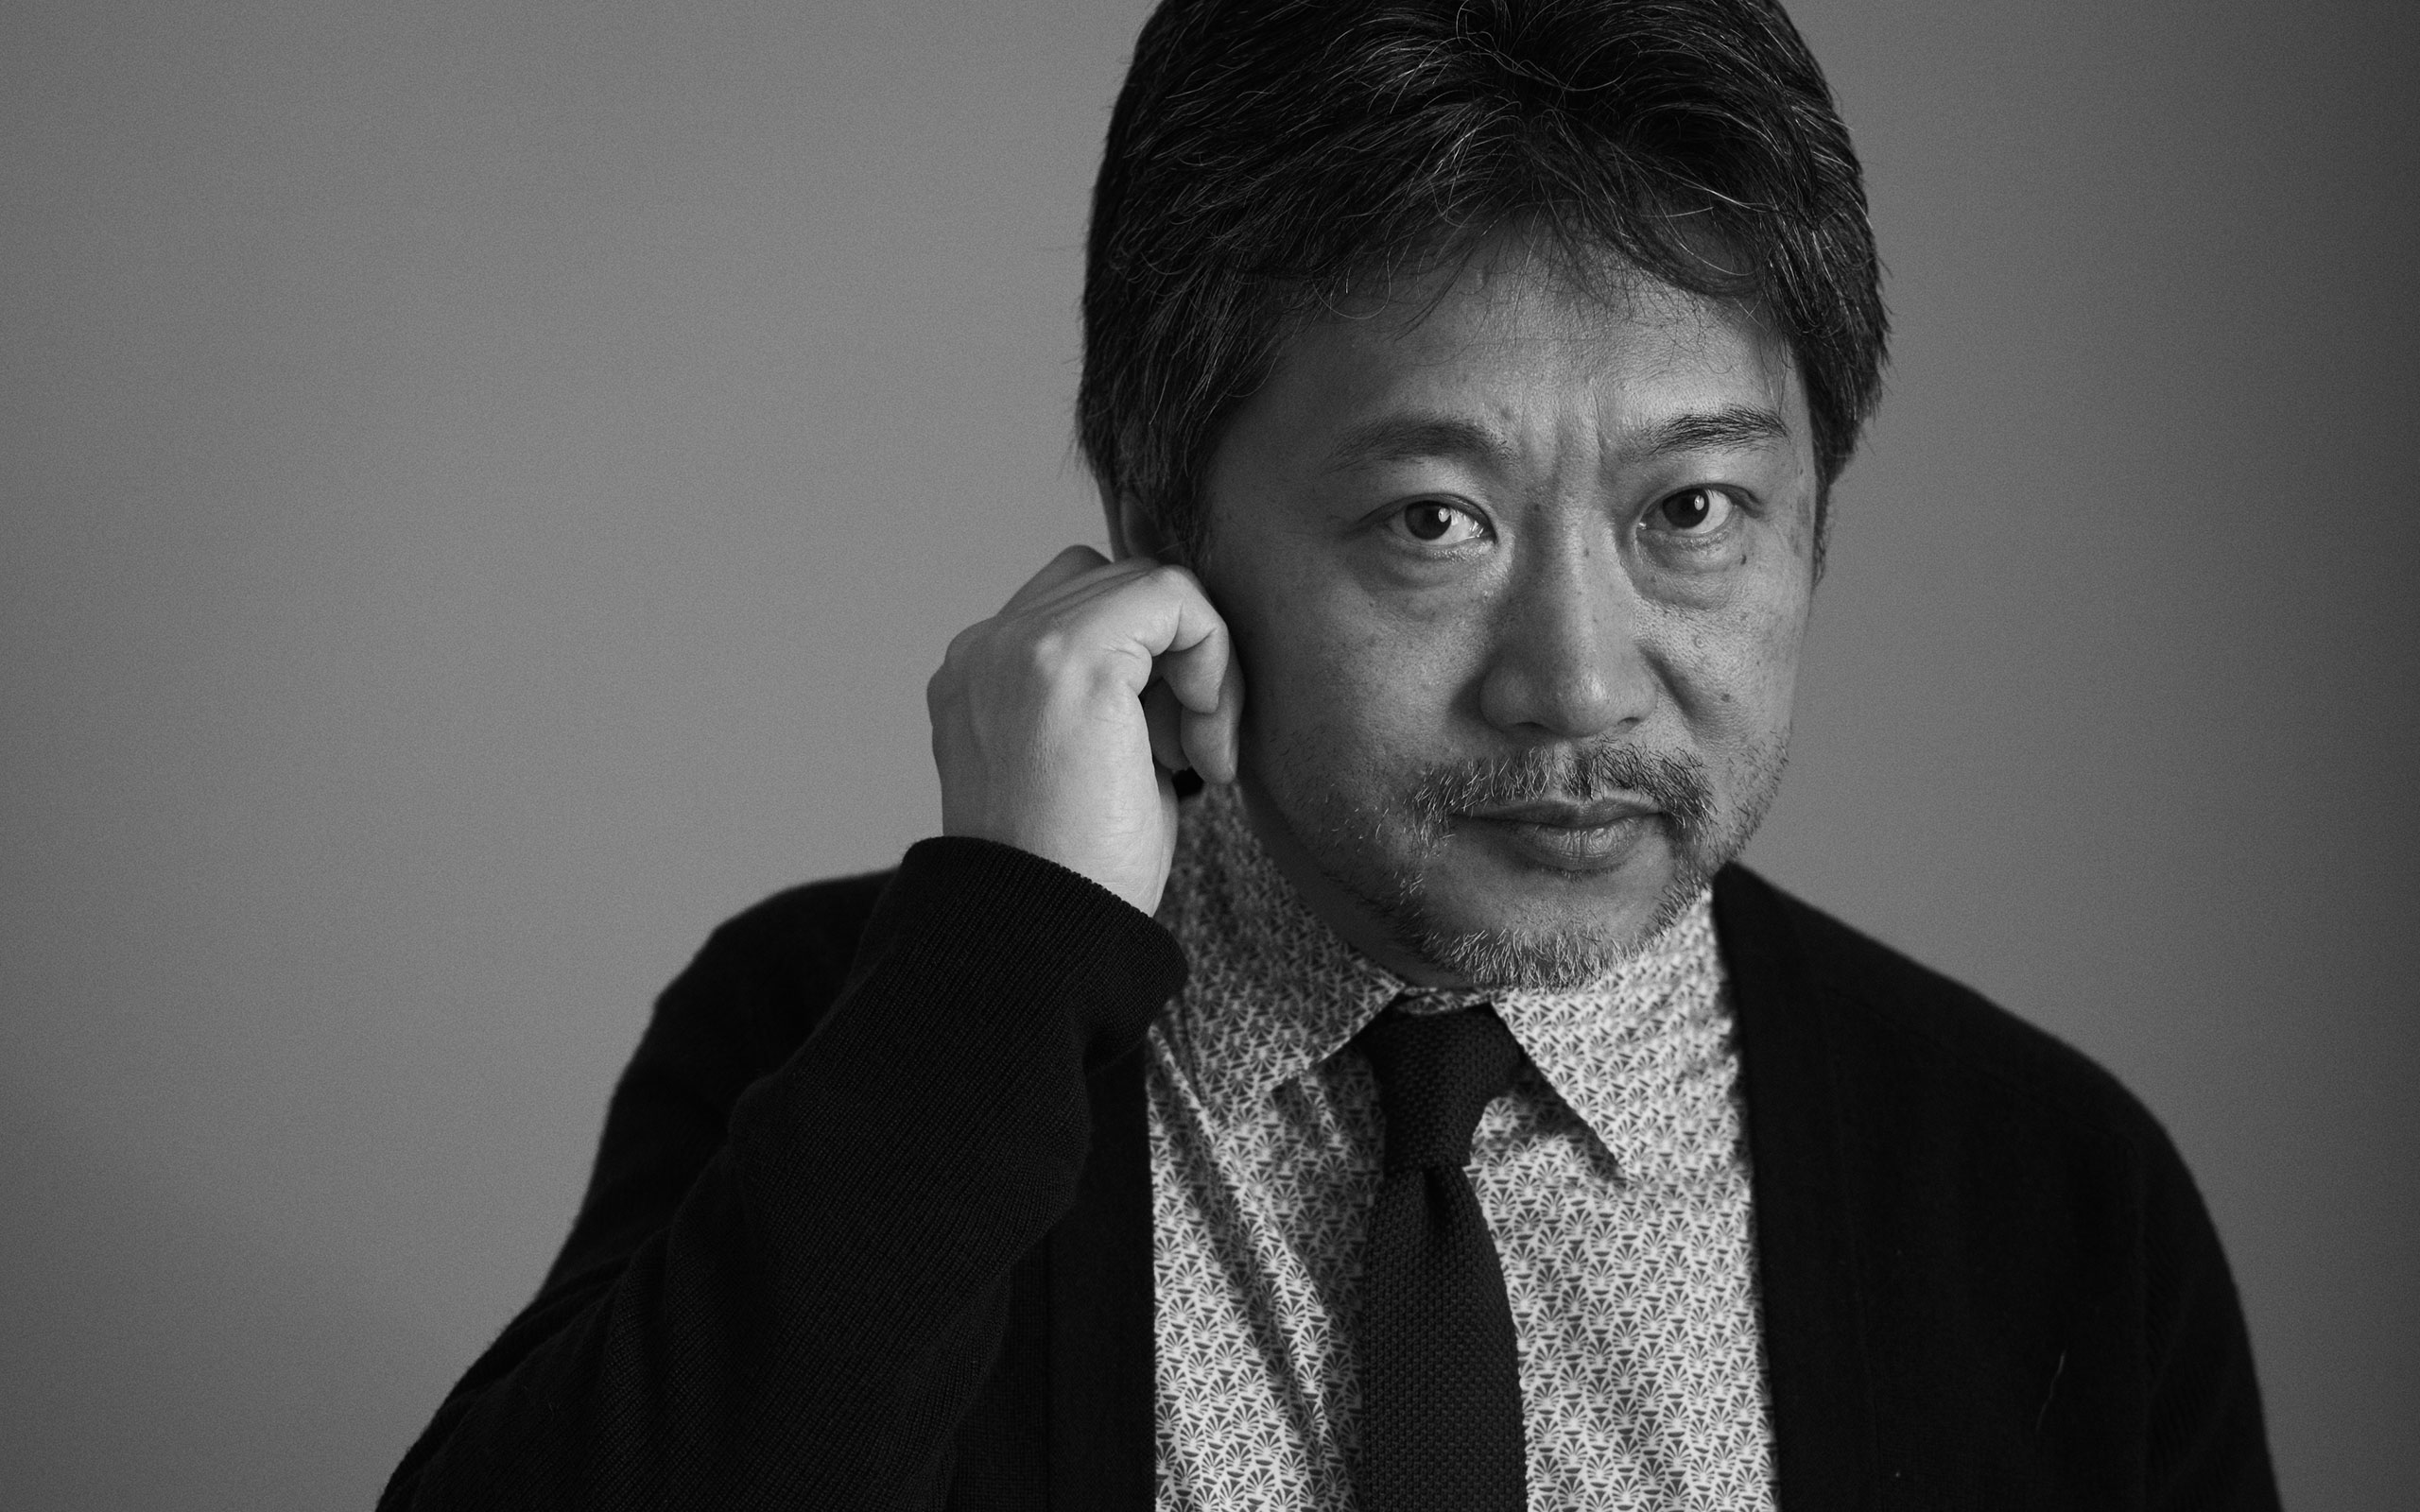 Interview with Hirokazu Koreeda